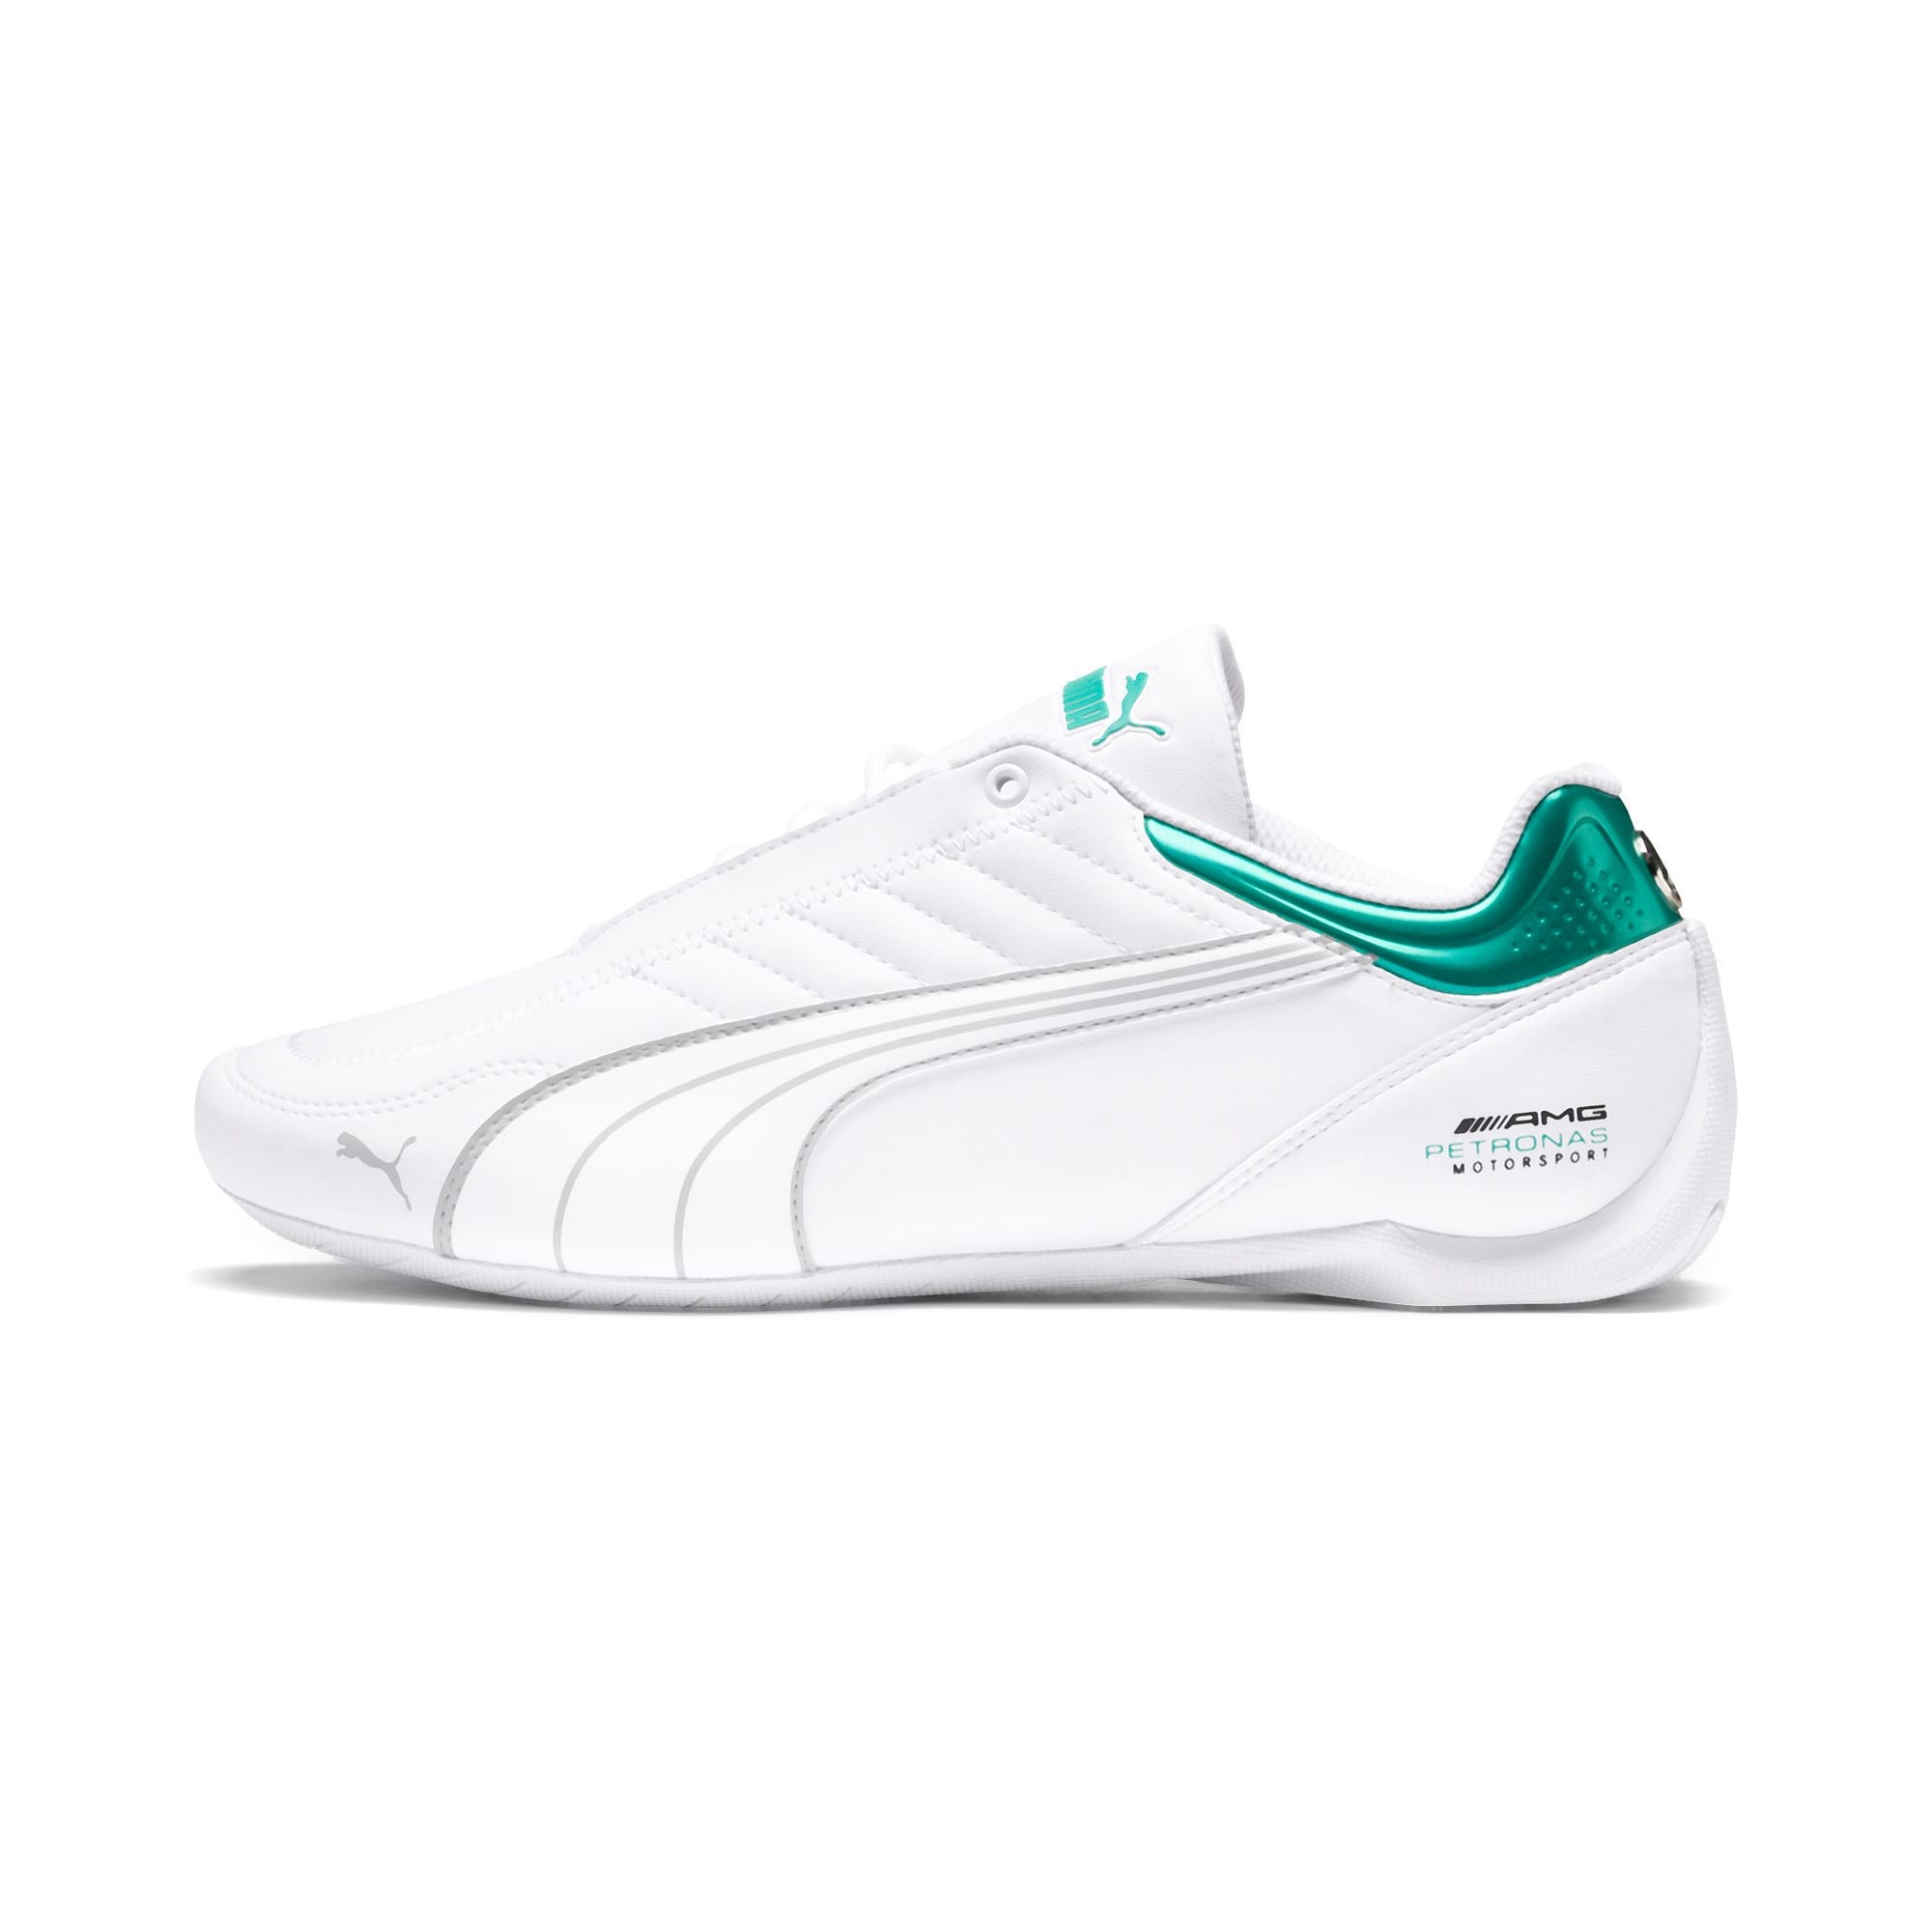 Thumbnail 1 of Mercedes AMG Petronas Motorsport Future Kart Cat Trainers, Puma White-Mercedes Silver, medium